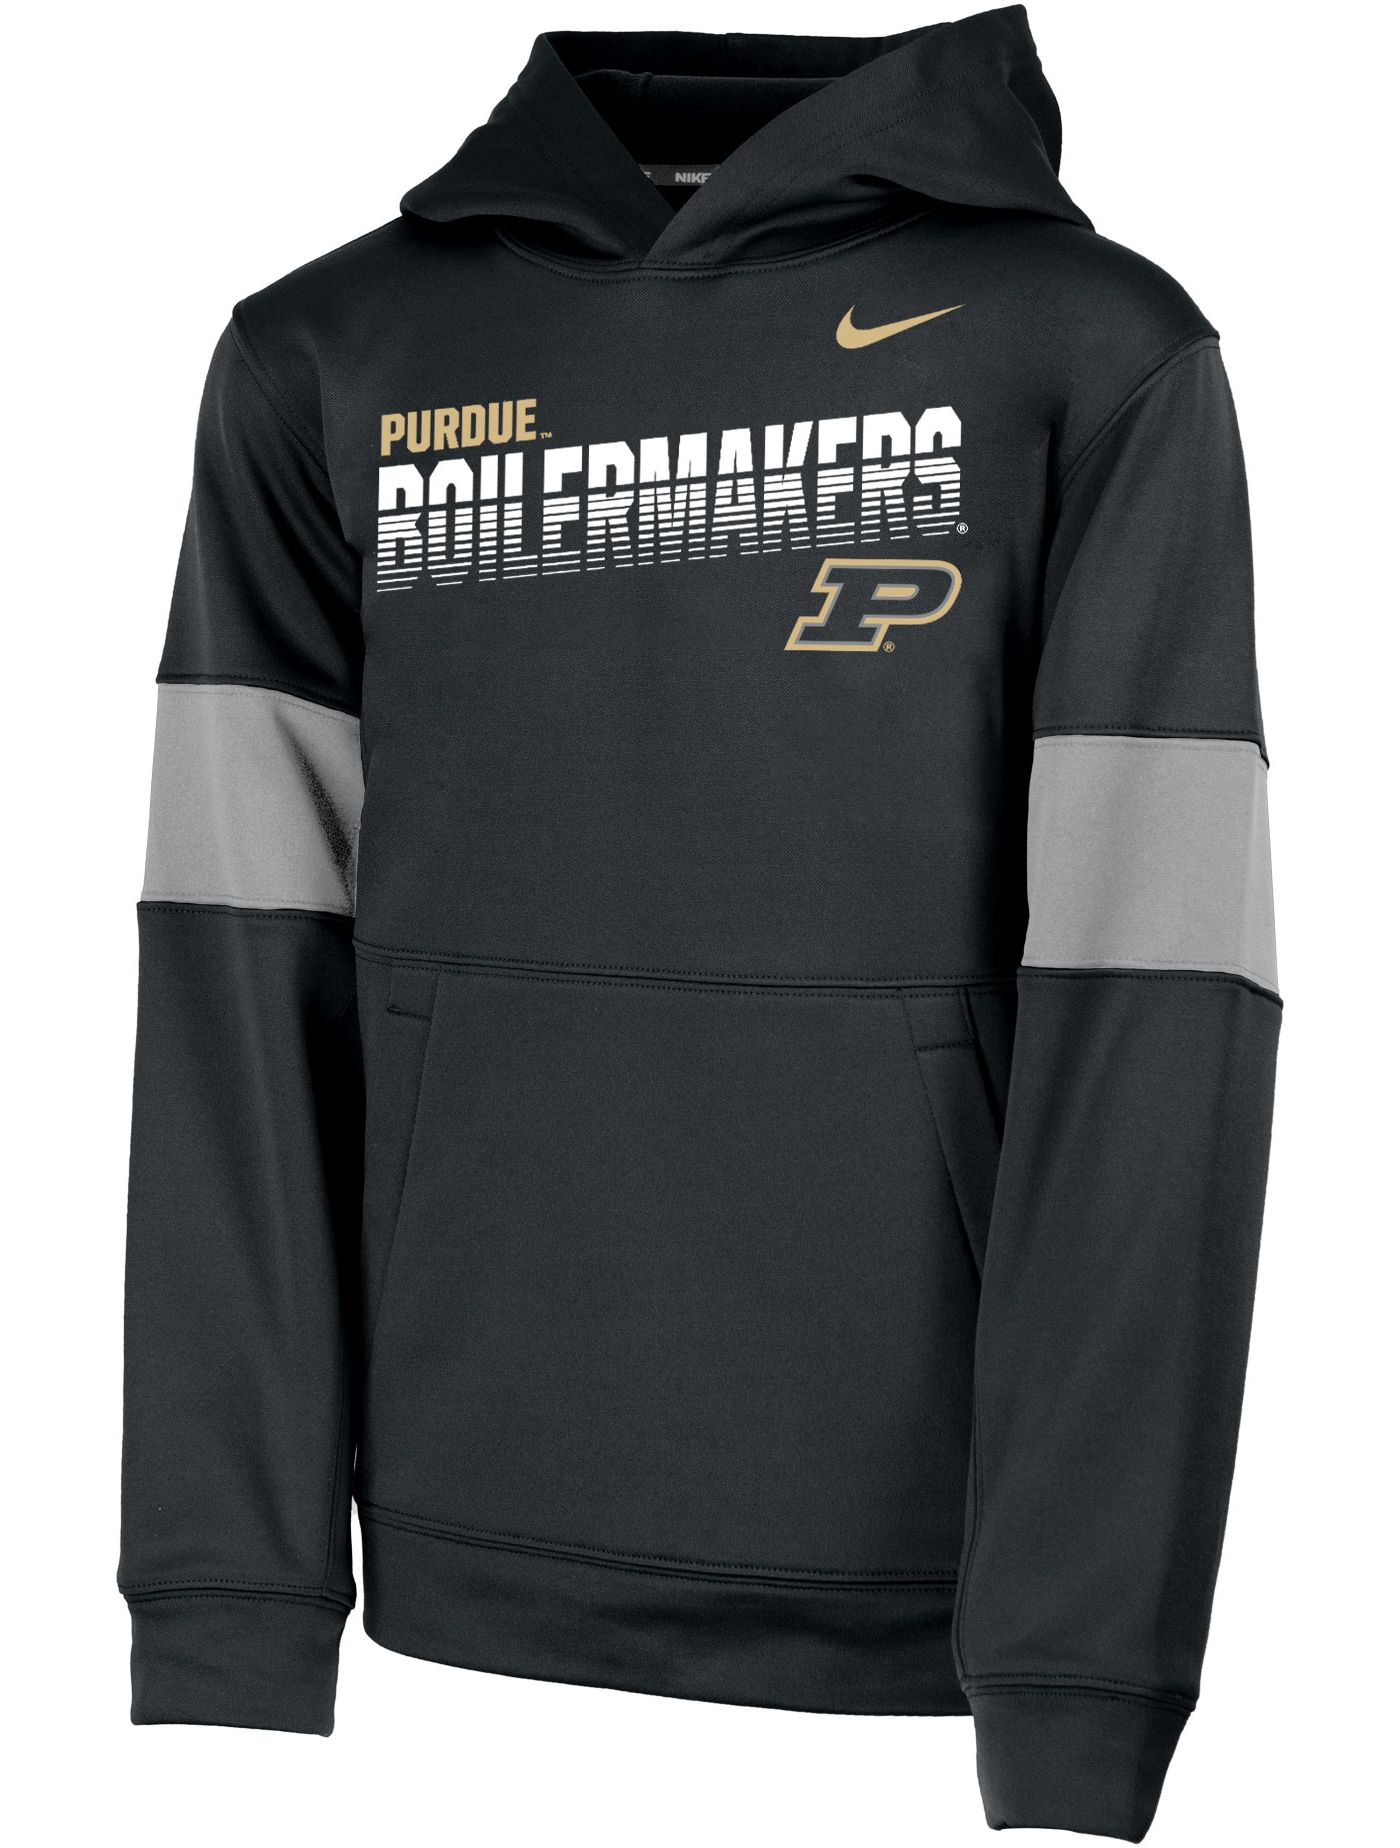 Nike Youth Purdue Boilermakers Therma Football Sideline Pullover Black Hoodie